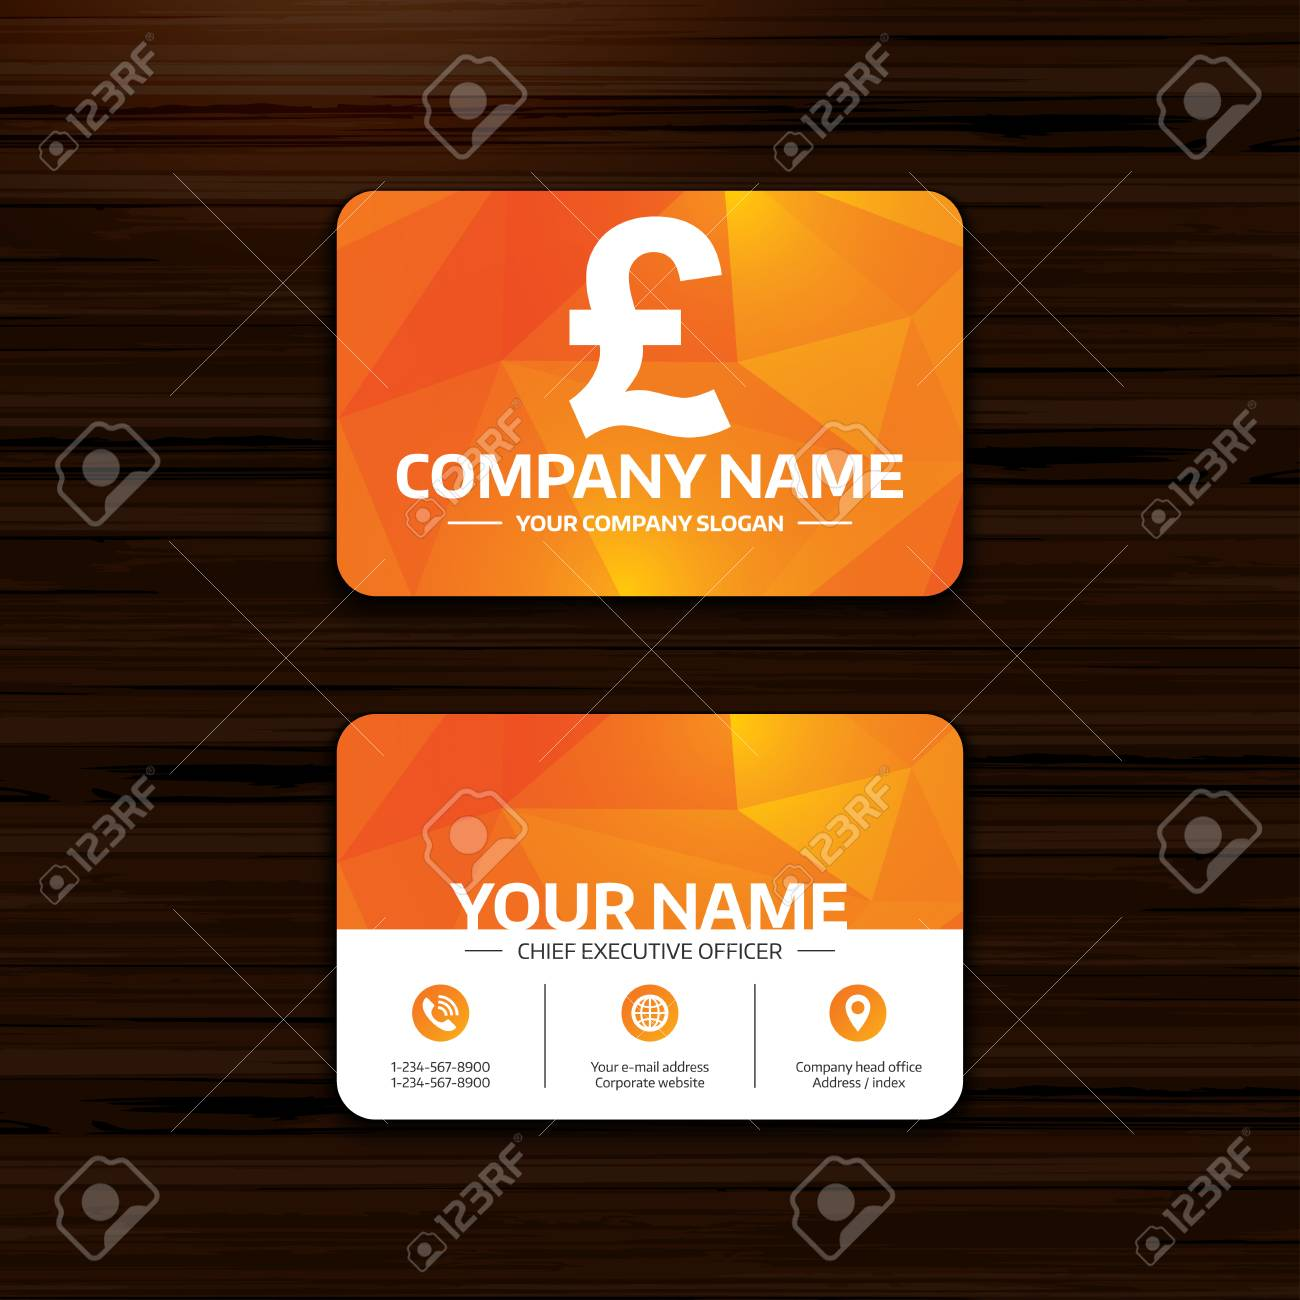 Business or visiting card template pound sign icon gbp currency business or visiting card template pound sign icon gbp currency symbol money label buycottarizona Gallery